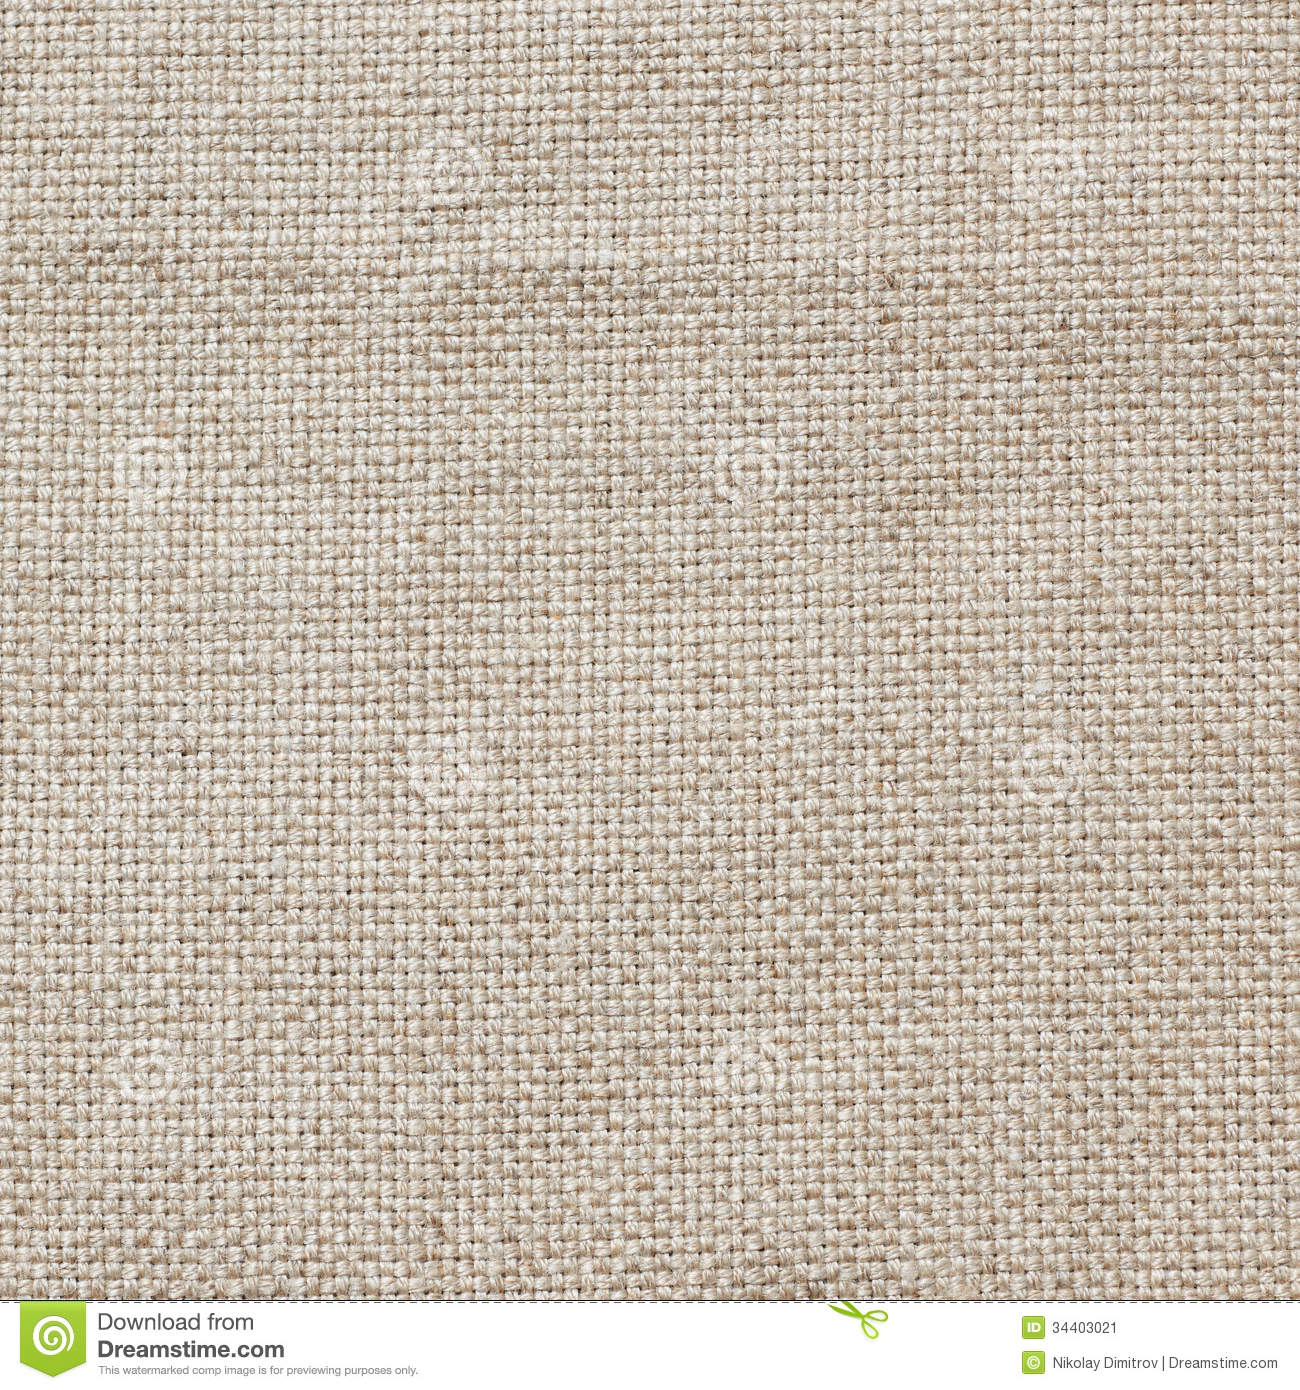 Linen canvas fabric background, real natural material.